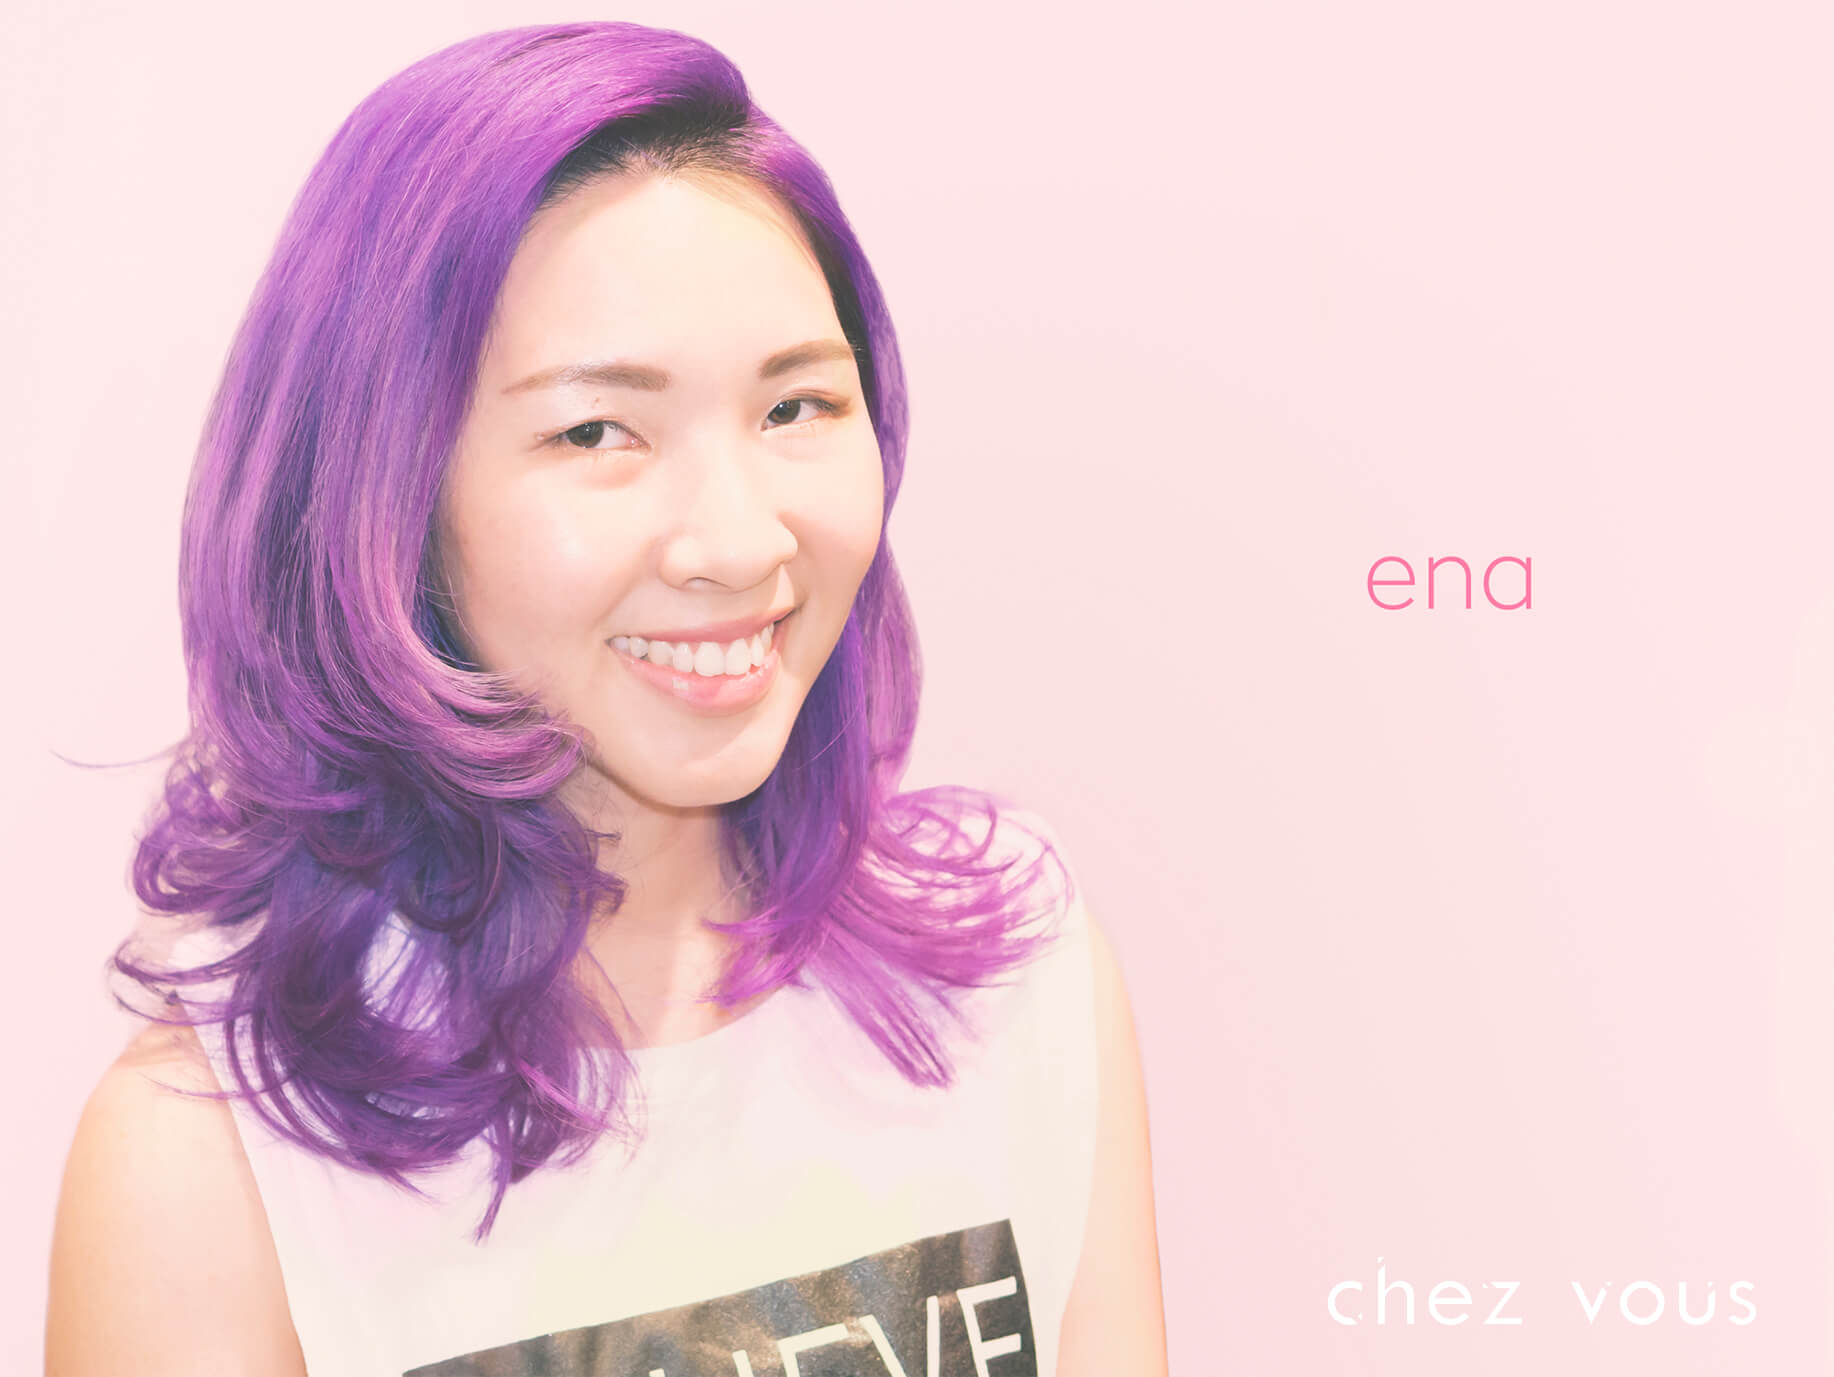 CHEZ VOUS 20TH ANNIVERSARY 20 LOOKBOOK CHALLENGE #4: ENA